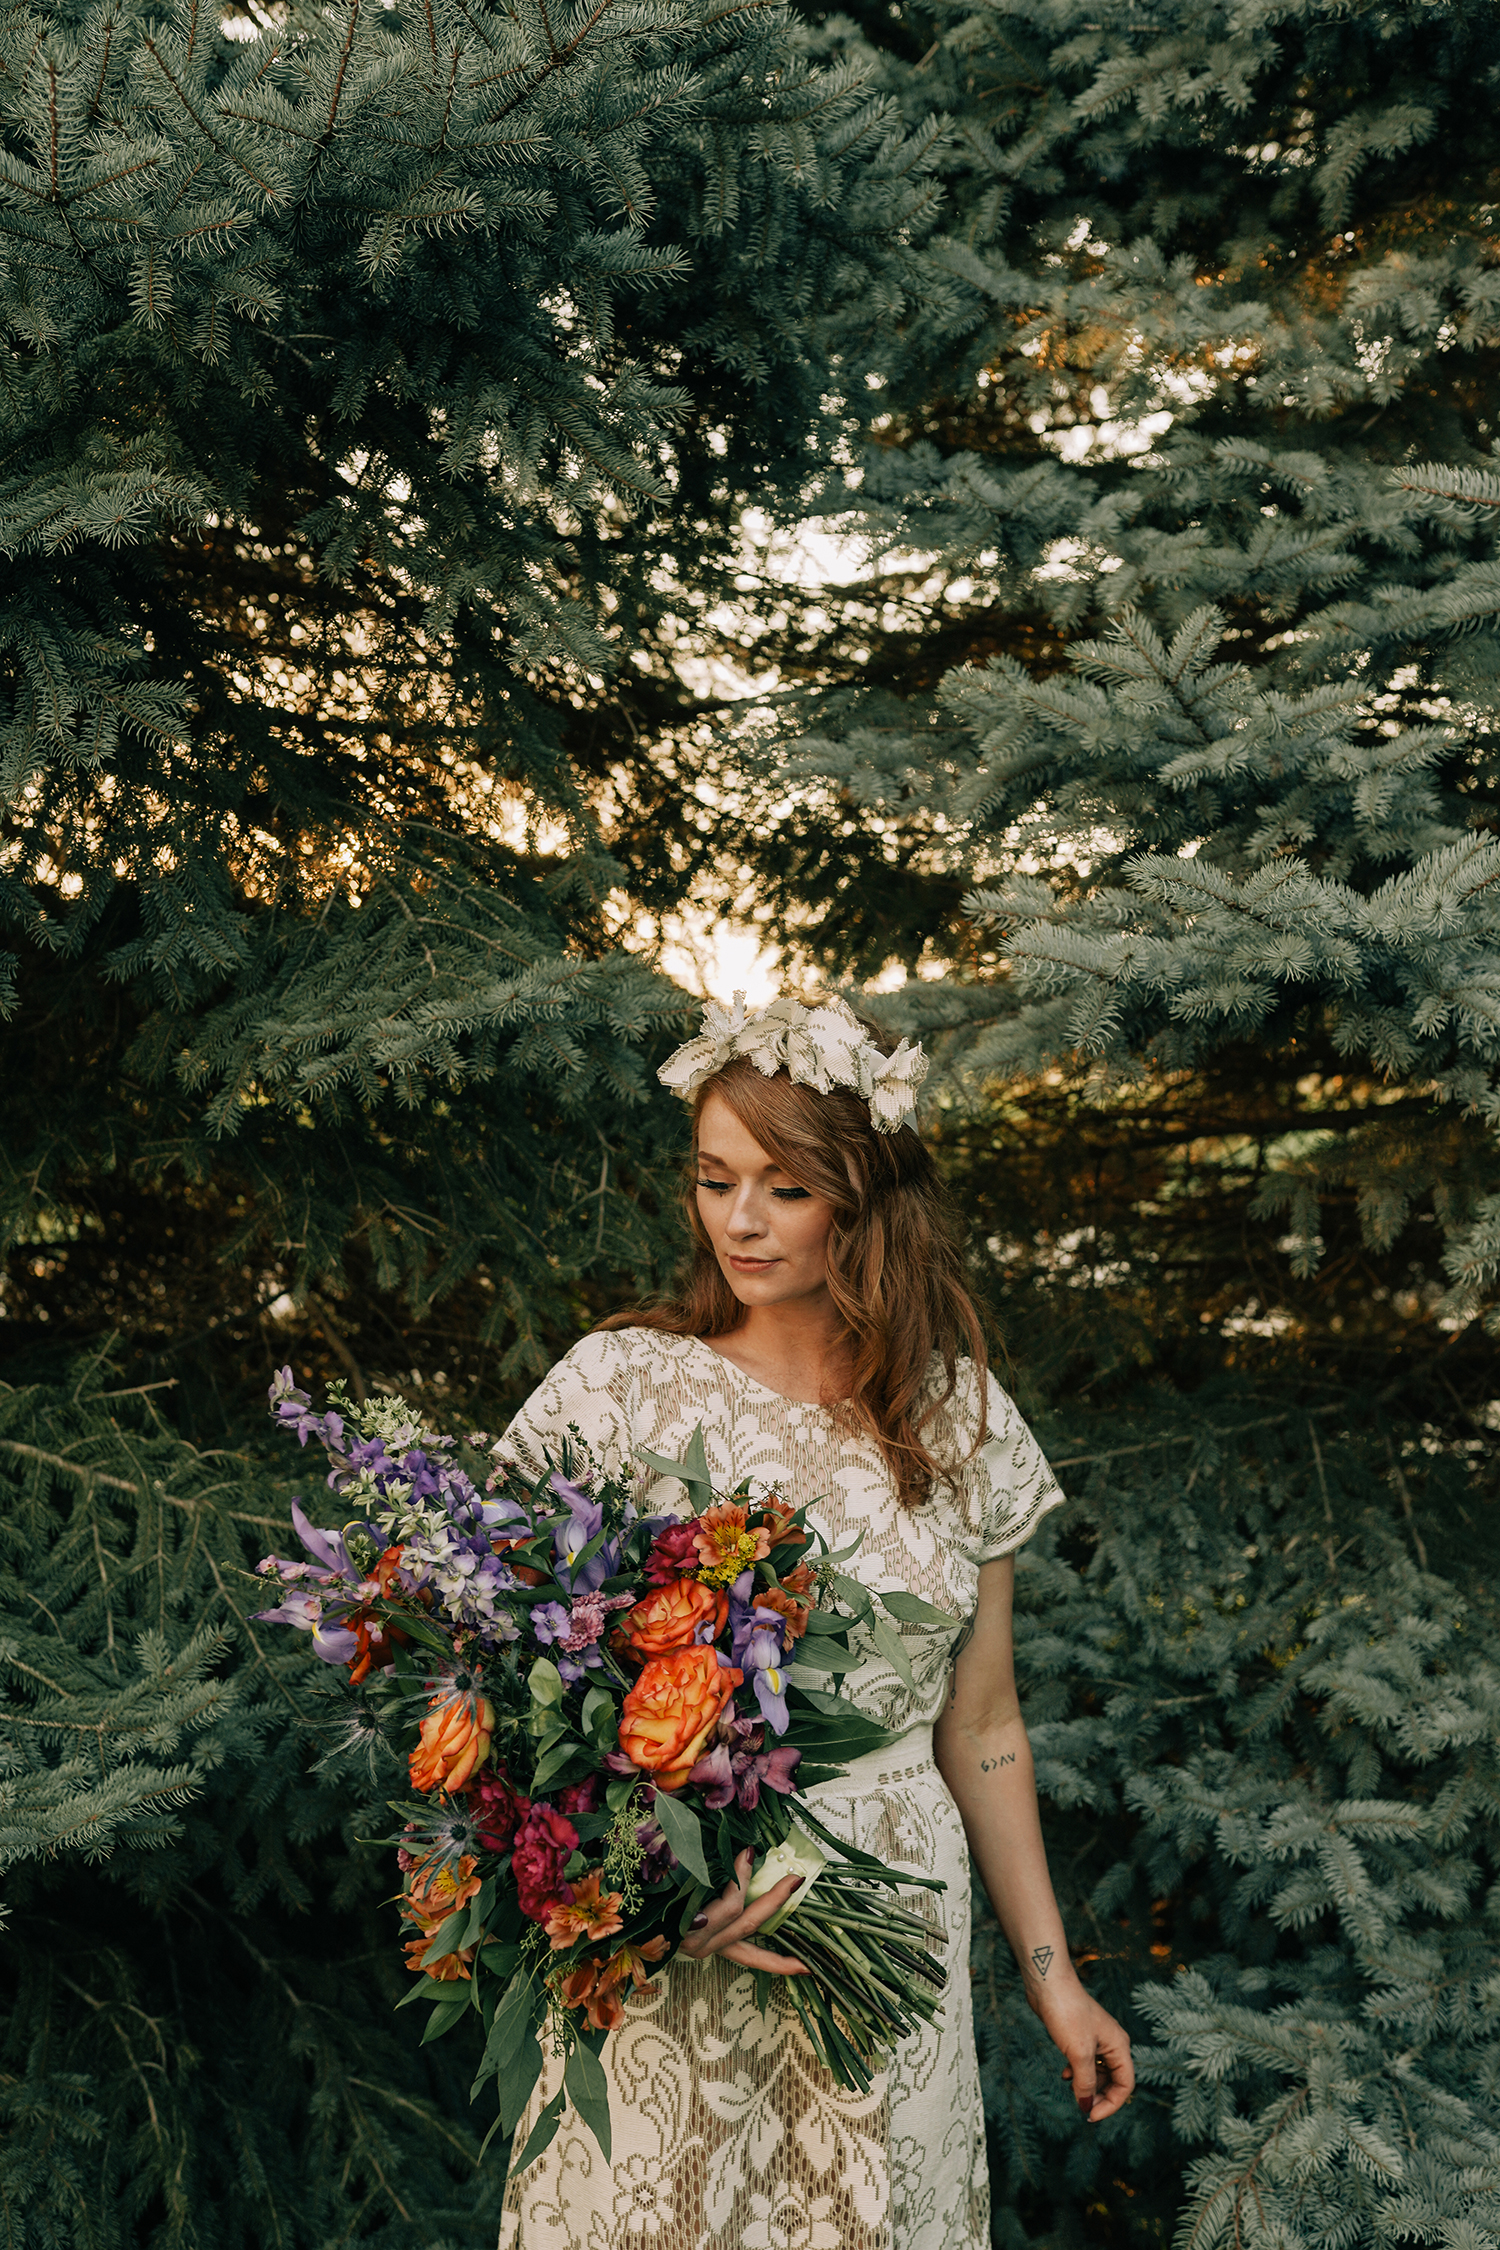 bride-standing-in-front-of-pine-trees-with-bouquet-myrtle-mae-iris-aisle-dame-maiden-lavender-blue-floral-raelyn-ramey-photography.jpg